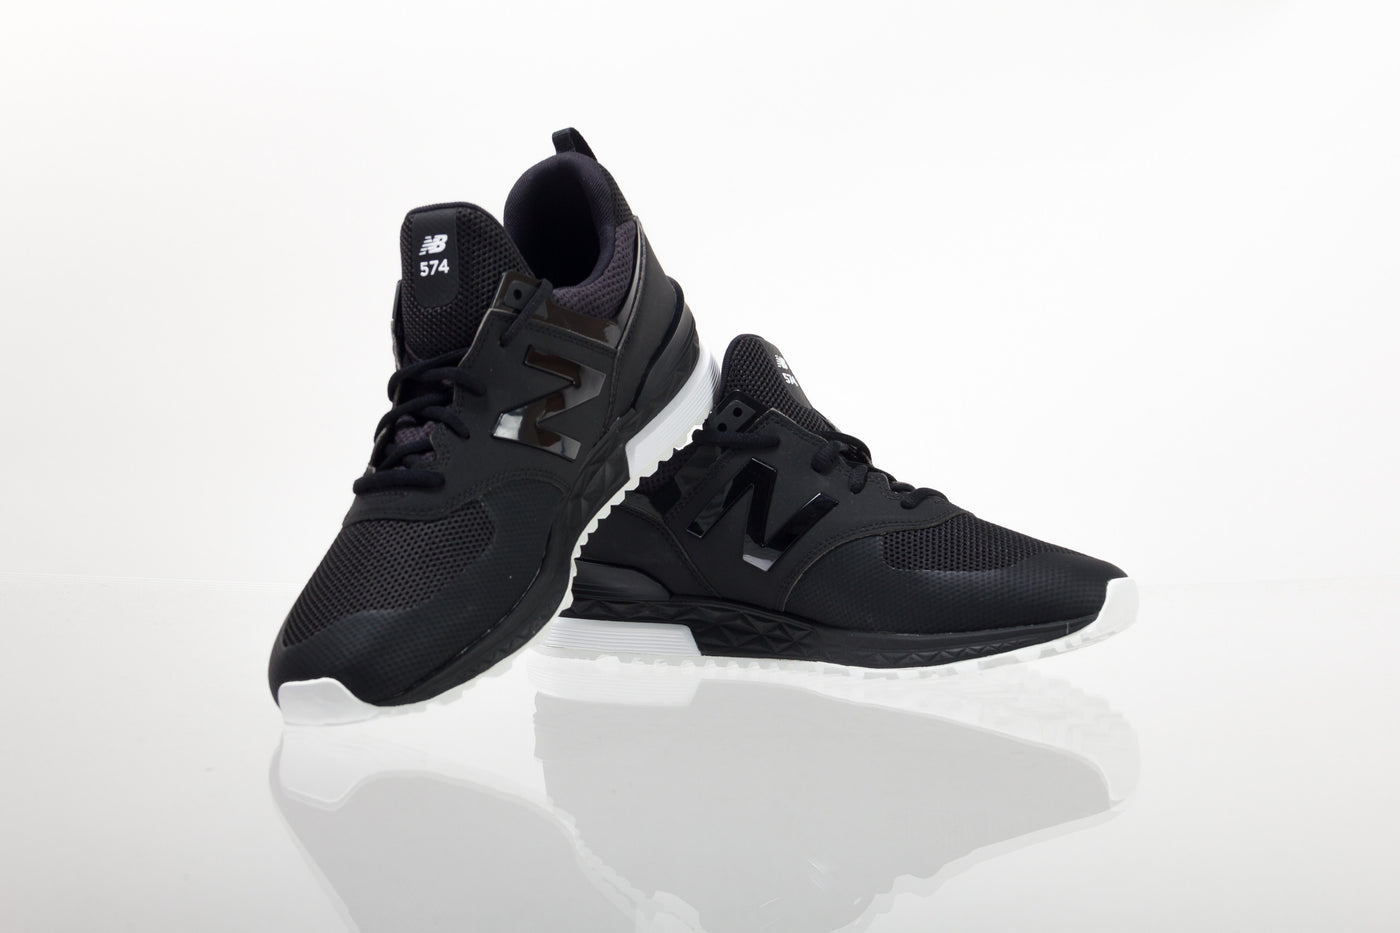 best website 422ec 47ece New Balance 574 Sport - Black / White - Empire Skate